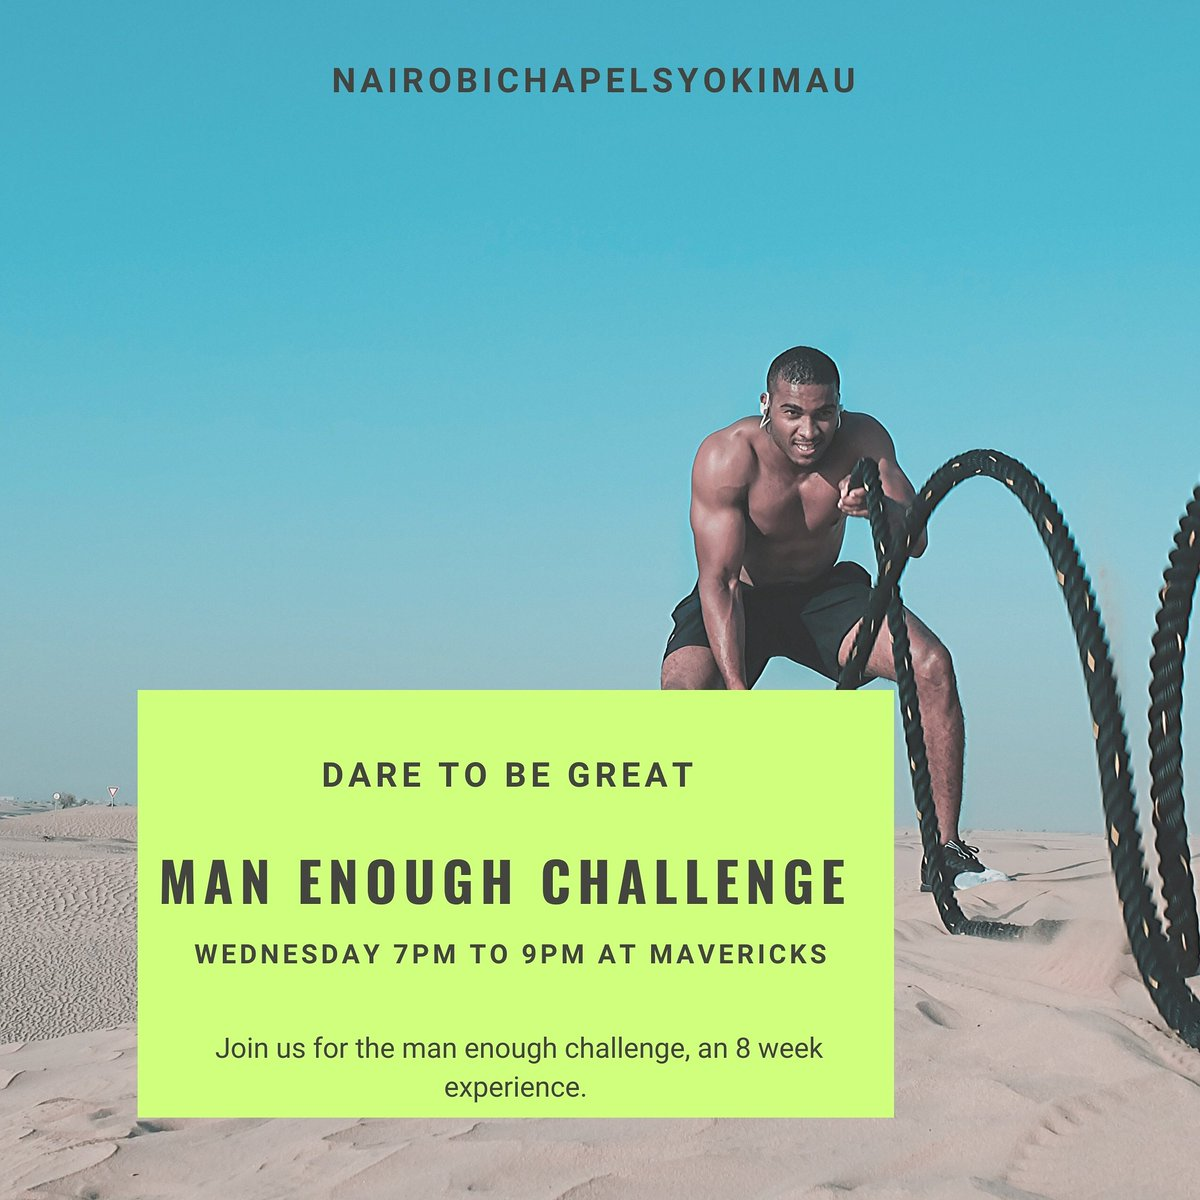 Man Enough Challenge, Syokimau Edition. Launching on Wednesday 7Pm to 9pm at Gateway Mall, Mavericks Restaurant. If your in Syokimau join using this link. #syokimau #manenough #Nairobichapelsyokimau  https://chat.whatsapp.com/E9WetN3EtmOHaxwtrwrlaM …  #CHEMUNpic.twitter.com/Tt0EeUS539